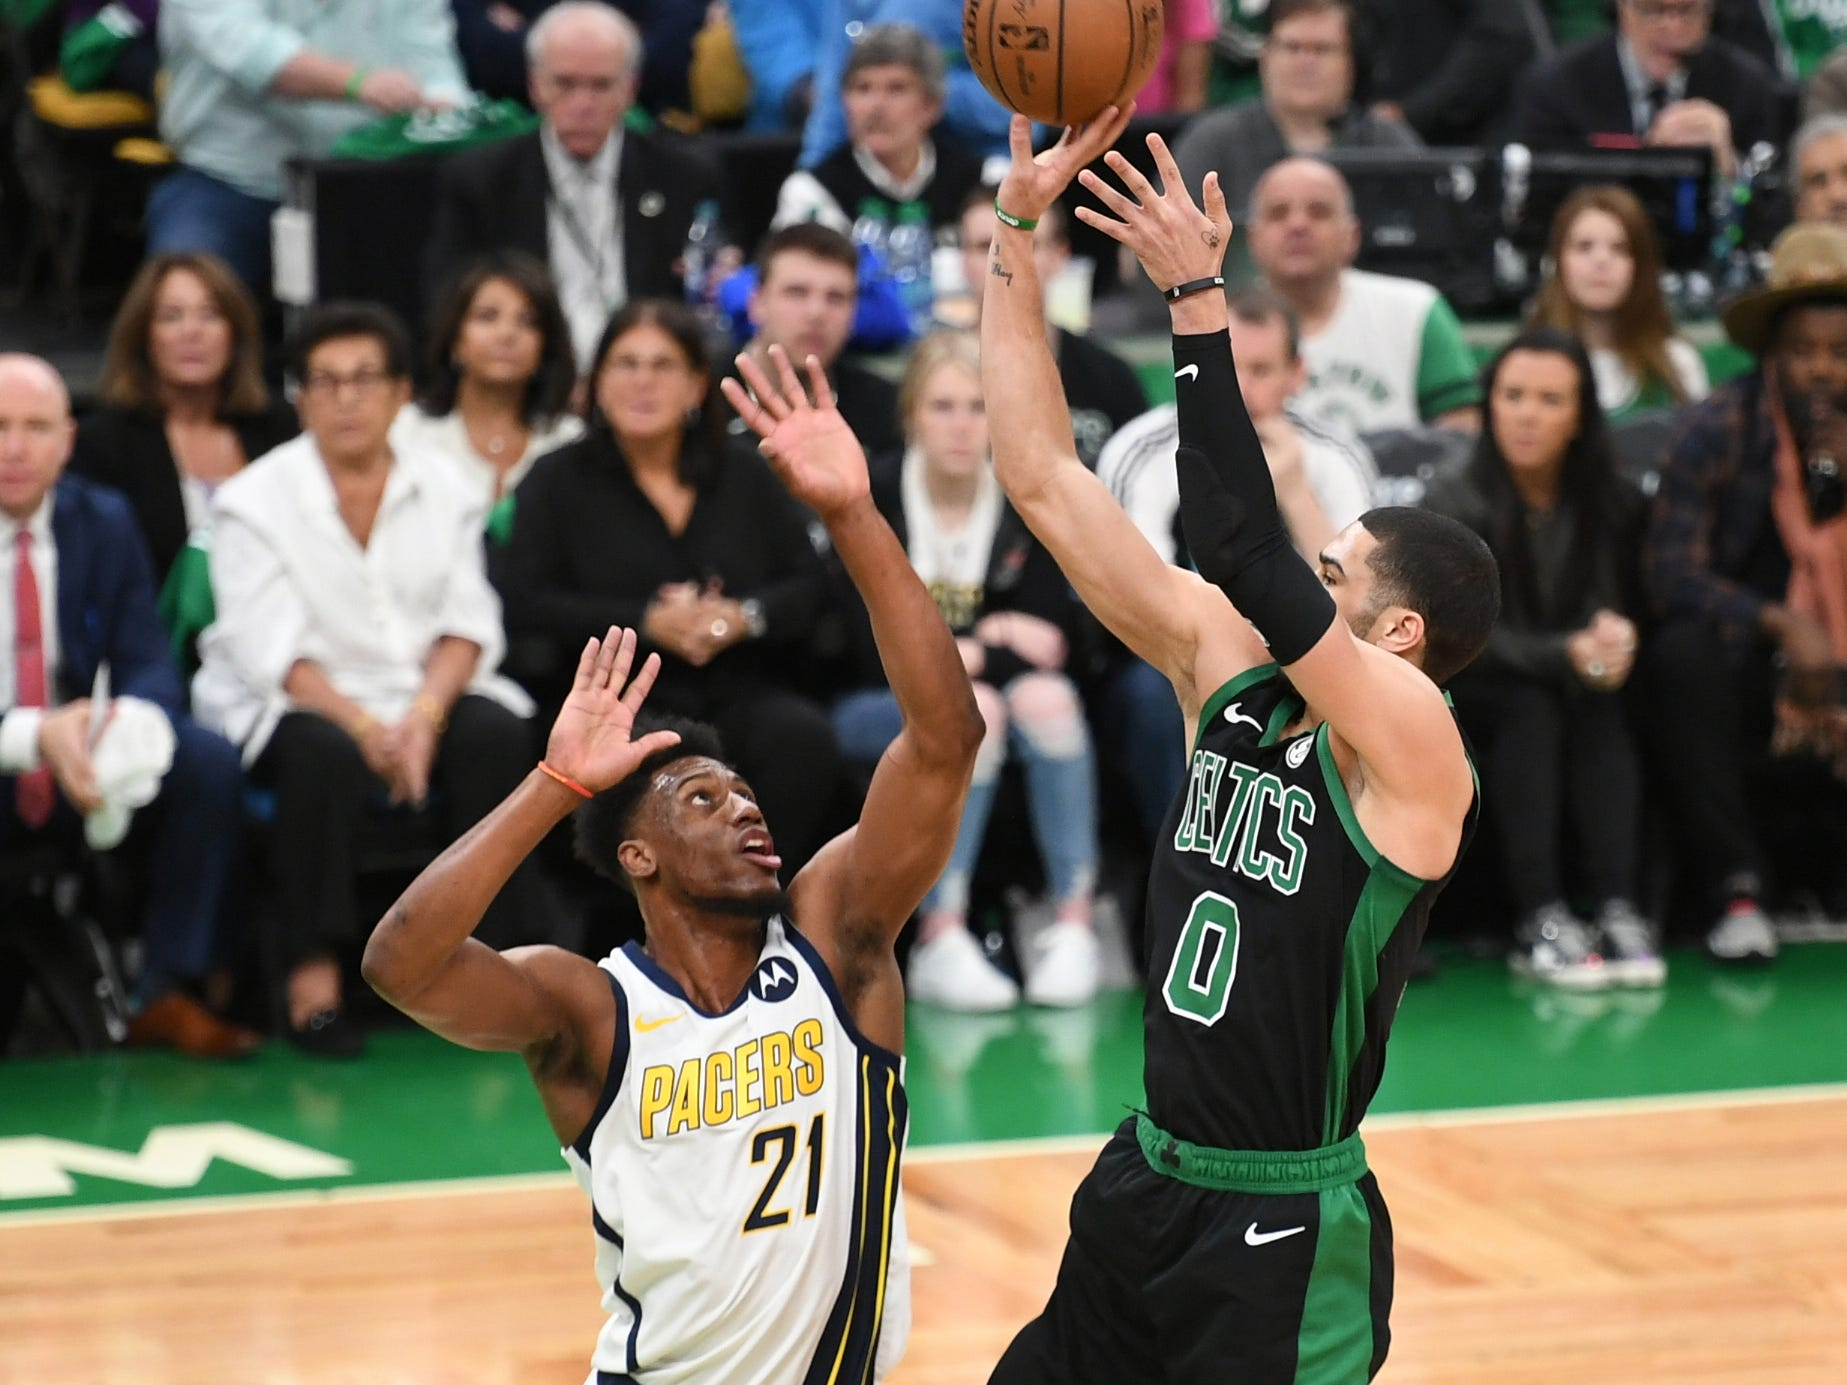 Apr 14, 2019; Boston, MA, USA; Boston Celtics forward Jayson Tatum (0) shoots the ball over Indiana Pacers forward Thaddeus Young (21) during the first half in game one of the first round of the 2019 NBA Playoffs at TD Garden.